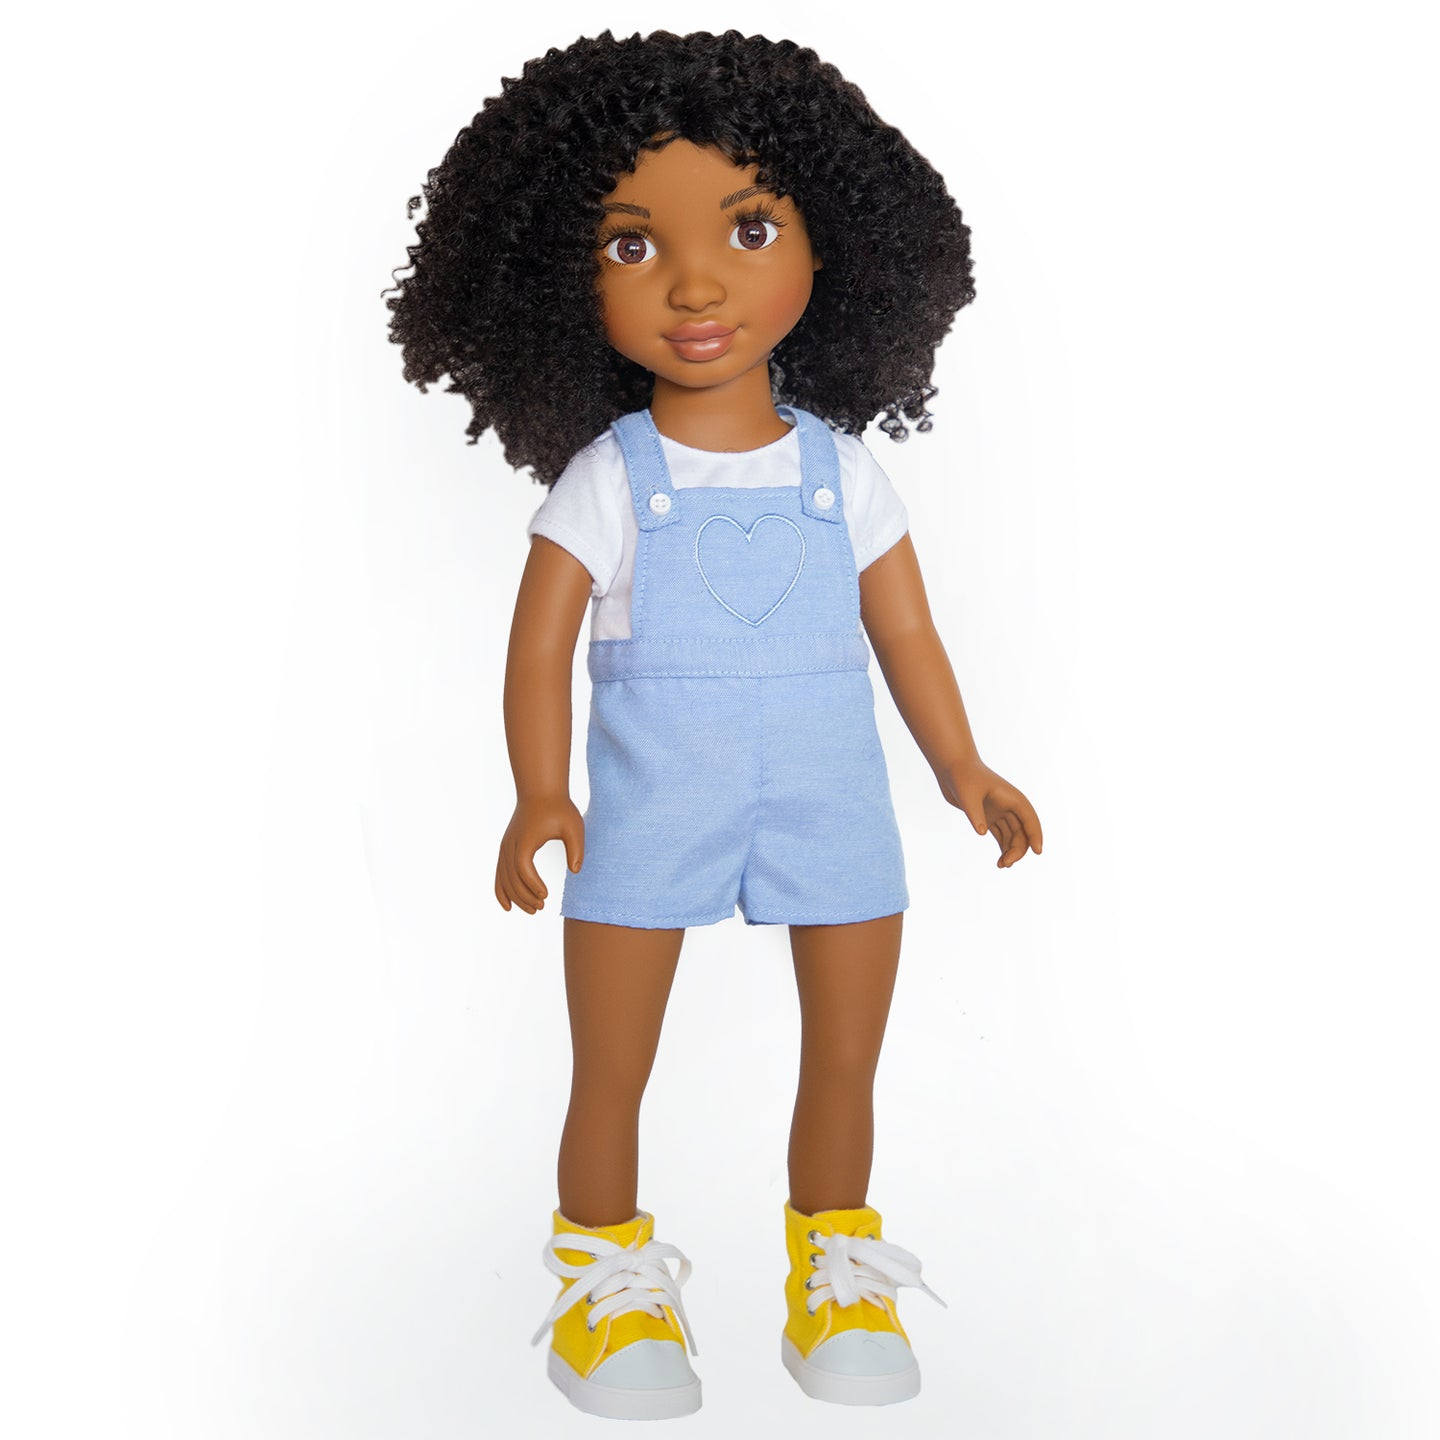 Healthy Roots Doll: Zoe (Pre-Sale Batch #3)